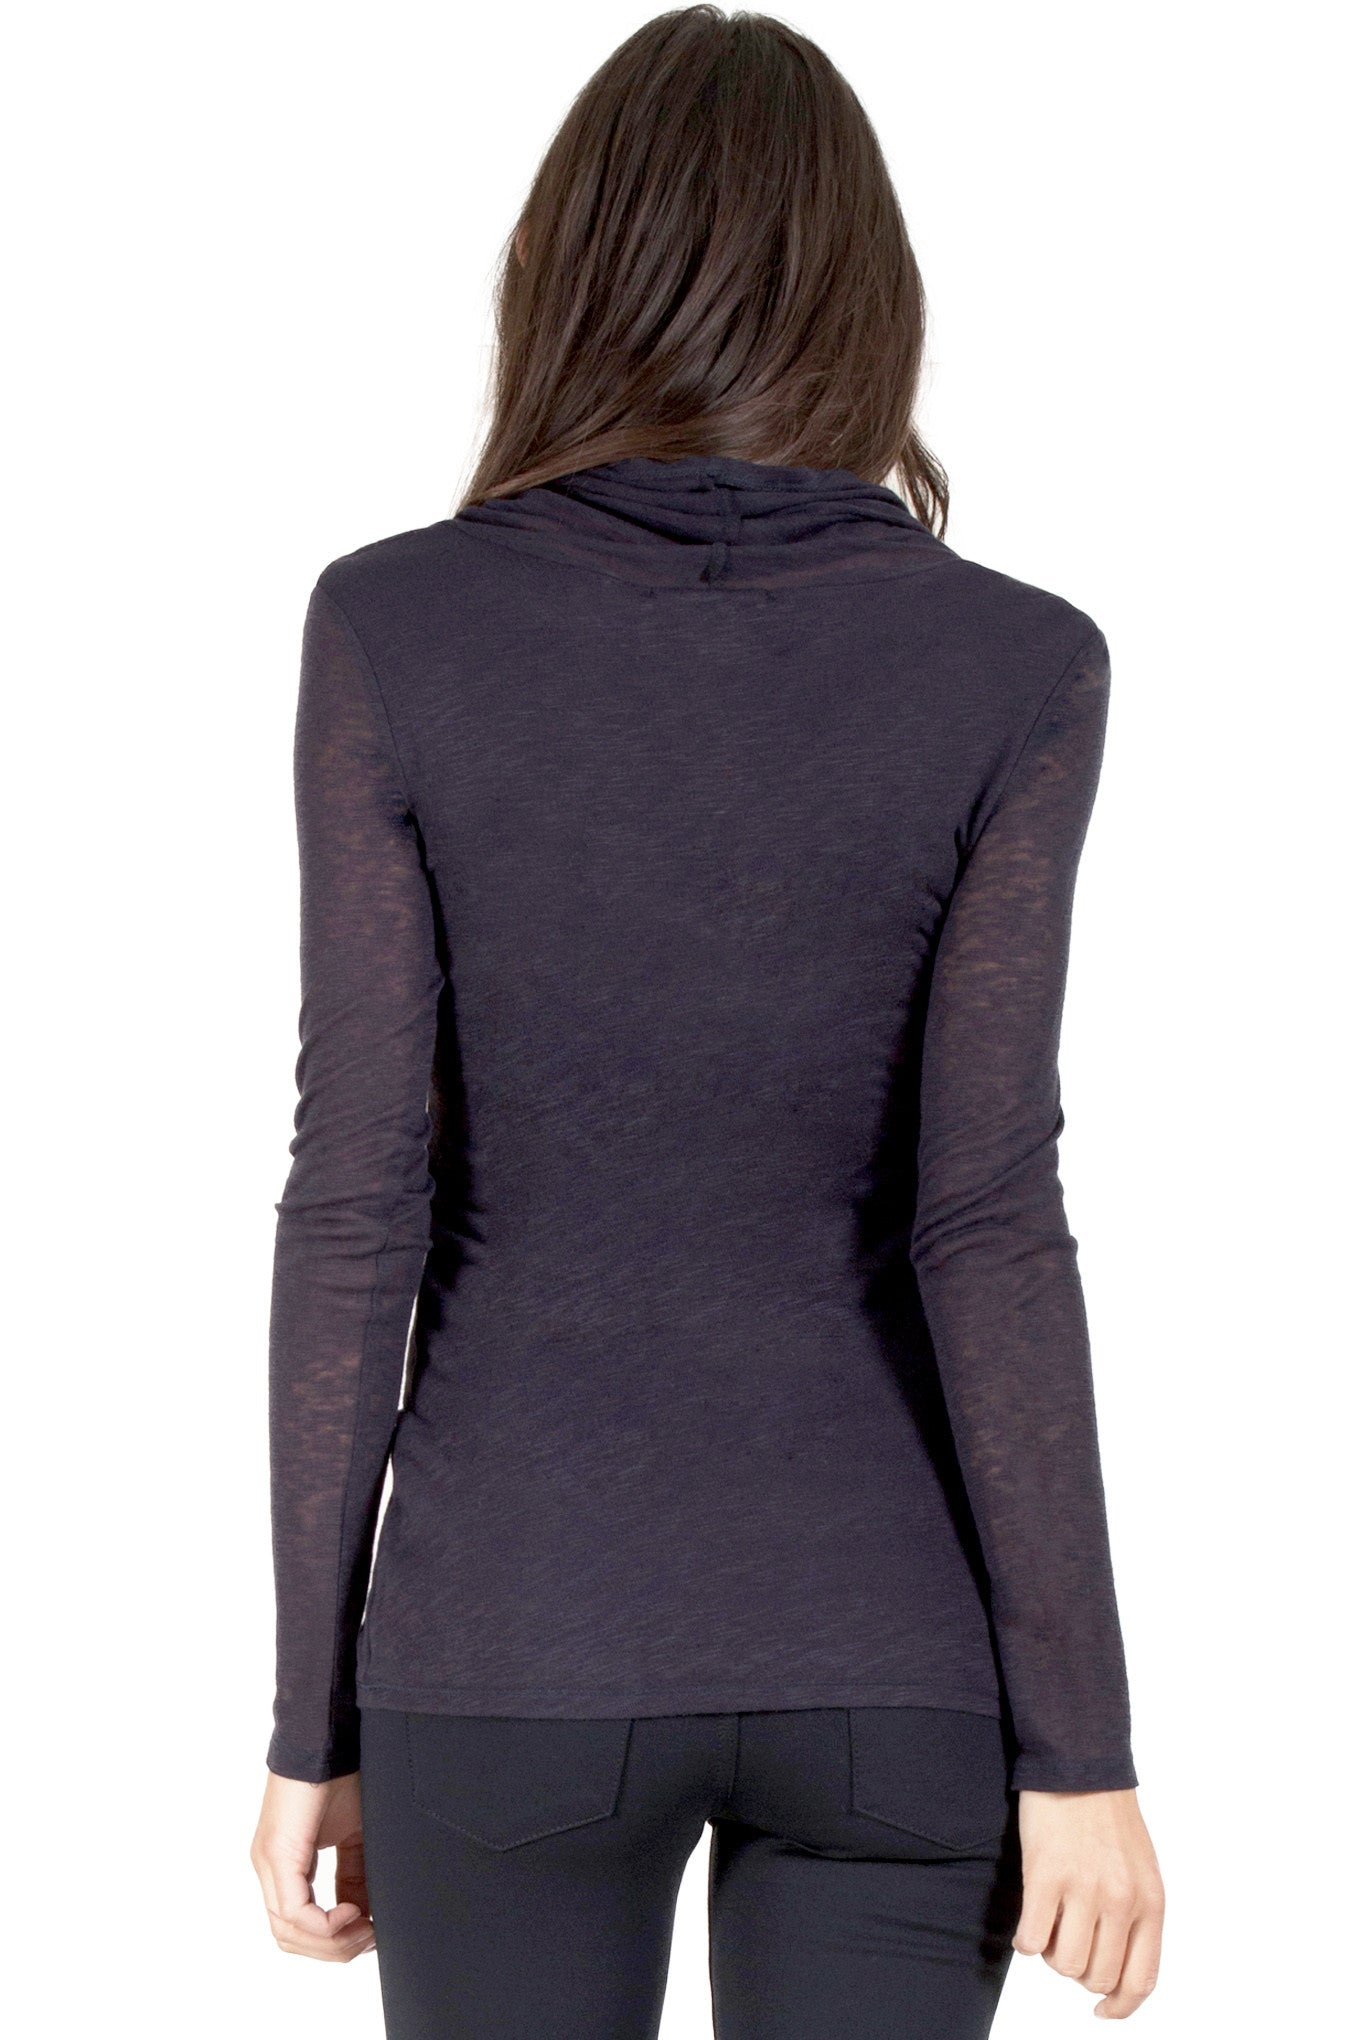 Cowl Neck Double Layered Long Sleeve